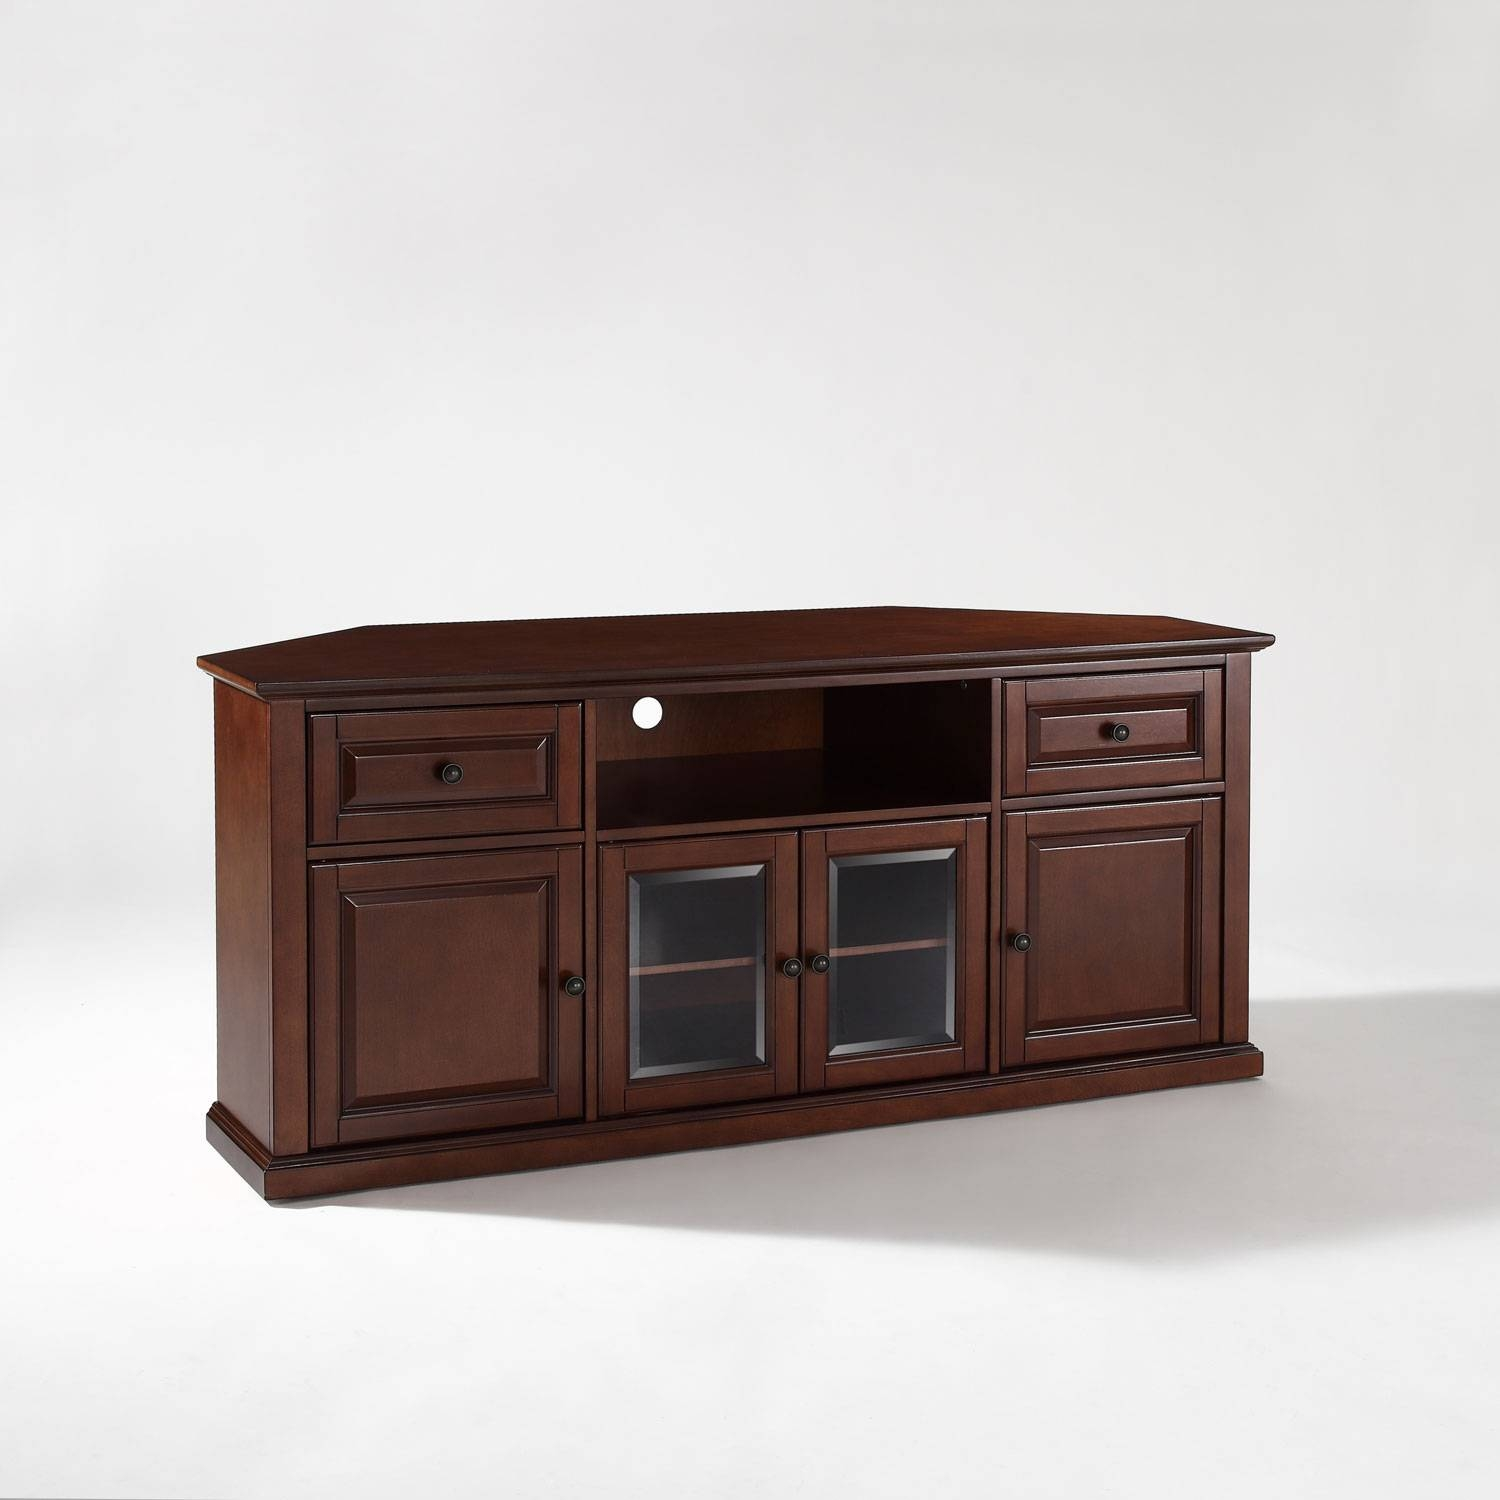 Tv Stands & Cabinets On Sale | Bellacor within 24 Inch Wide Tv Stands (Image 11 of 15)